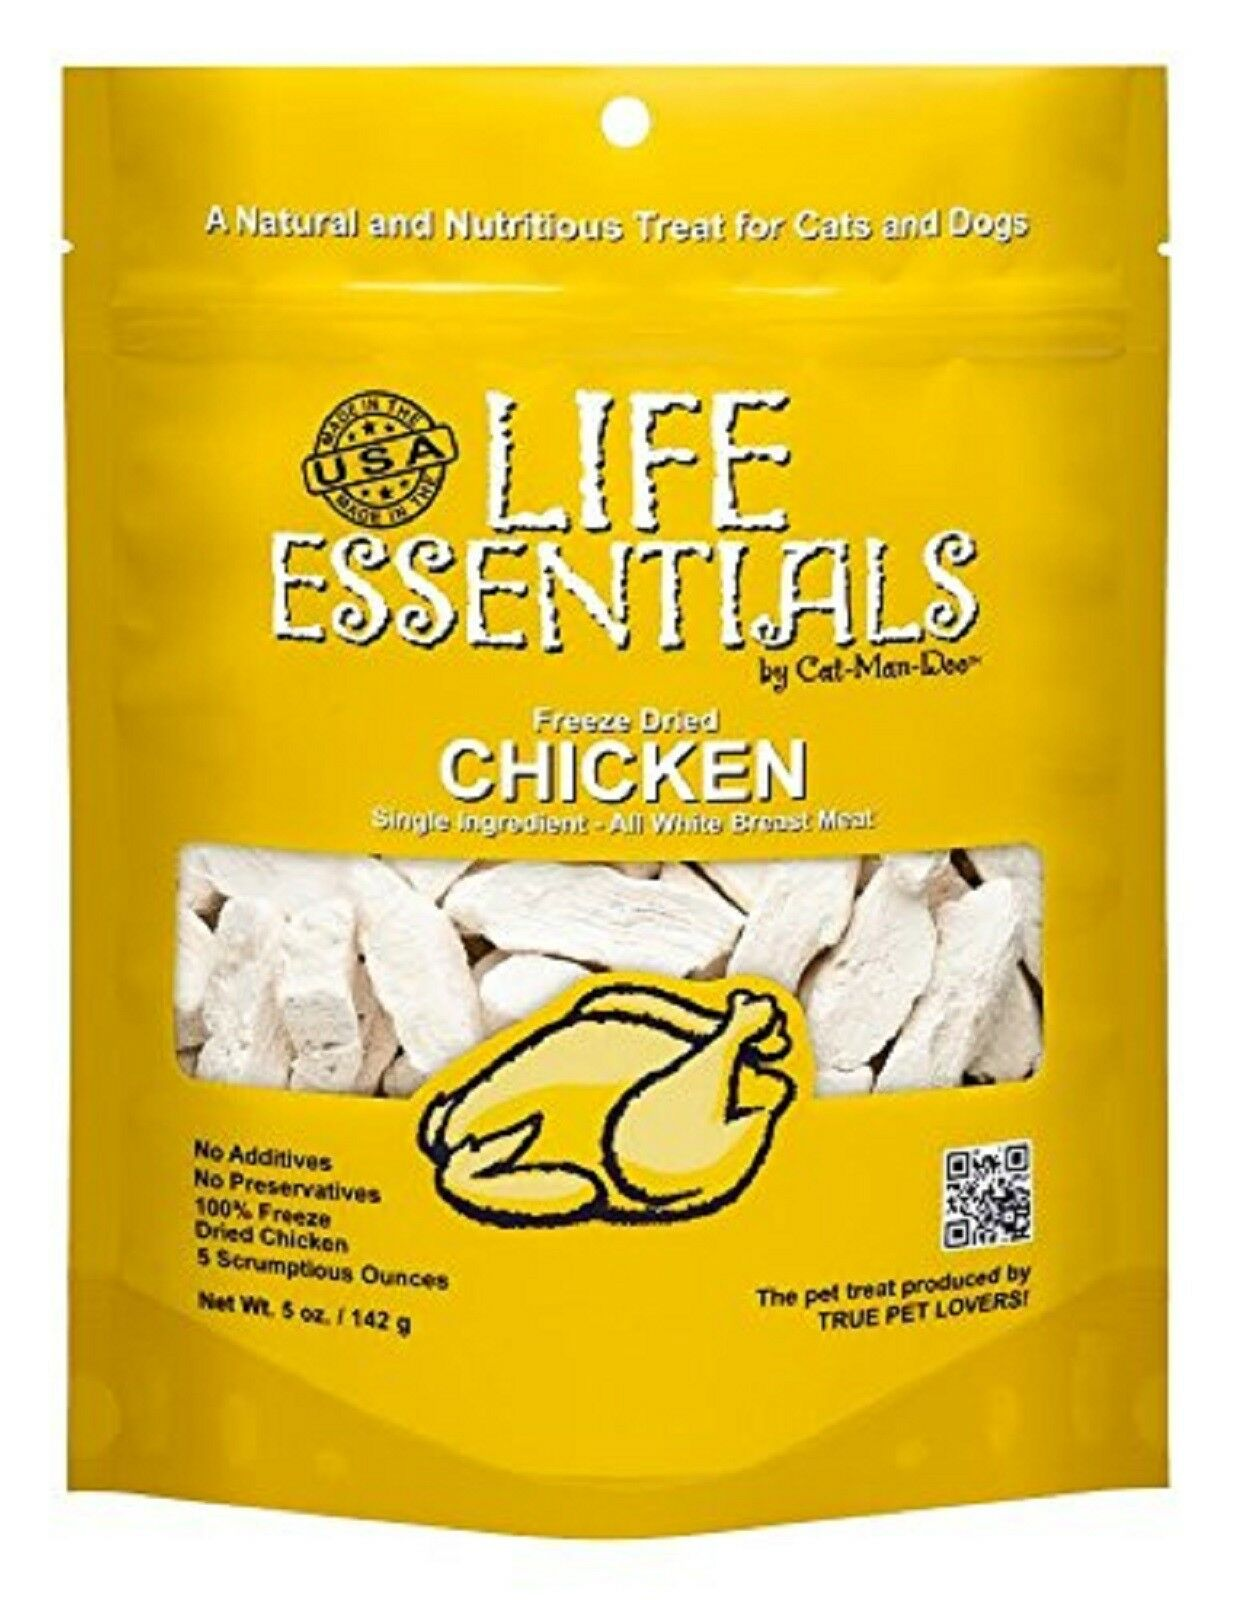 Life Essentials Chicken Freeze-Dried Cat & Dog Treats, 5-oz Size: 5-oz bag, Weights: 4.96 ounces